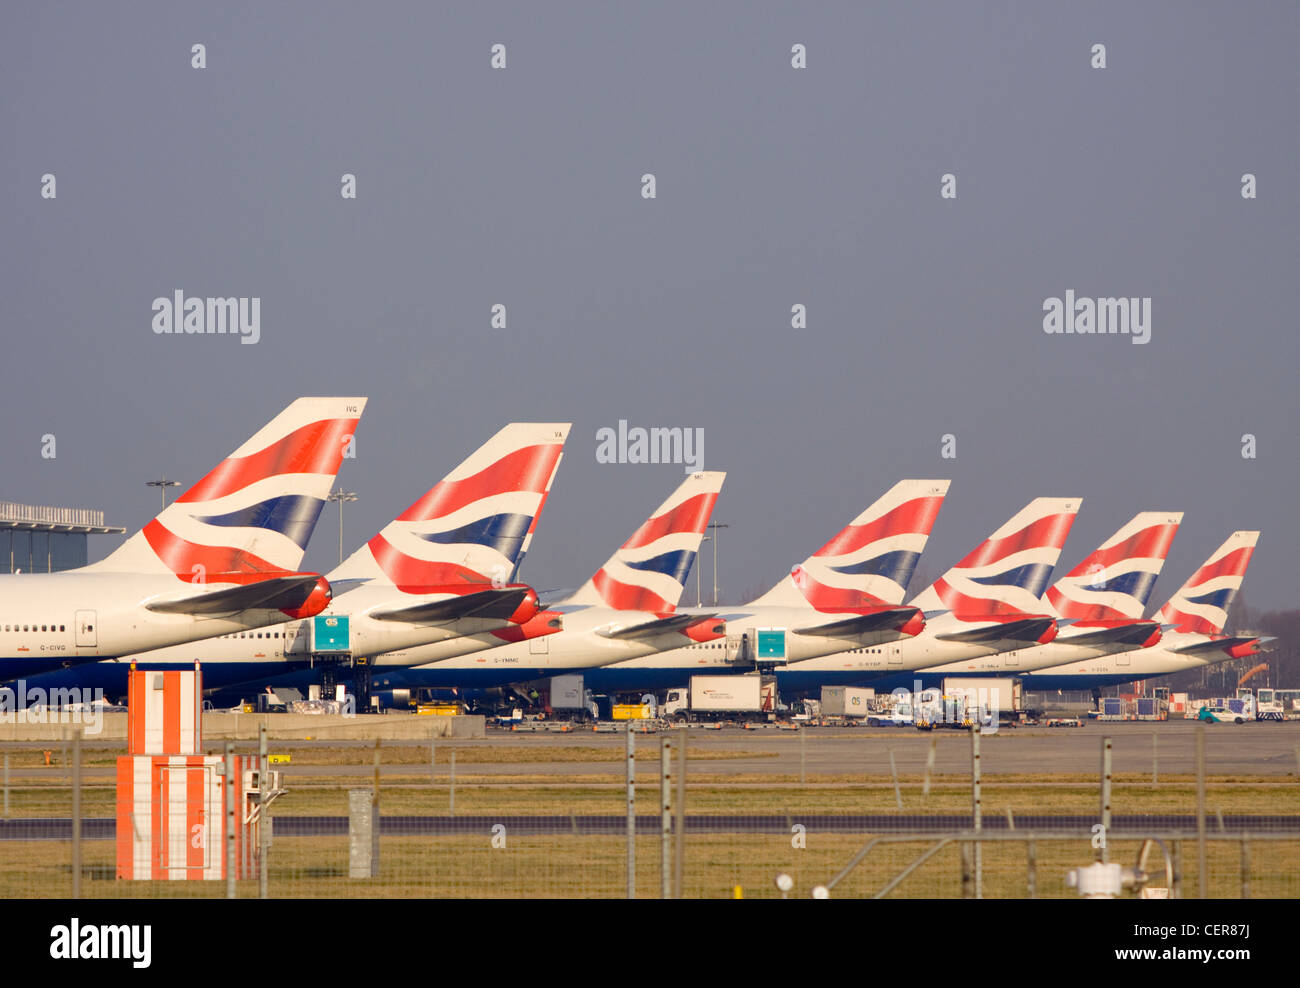 A row of tail fins from British Airways Jumbo jets outside a terminal at Heathrow airport. - Stock Image